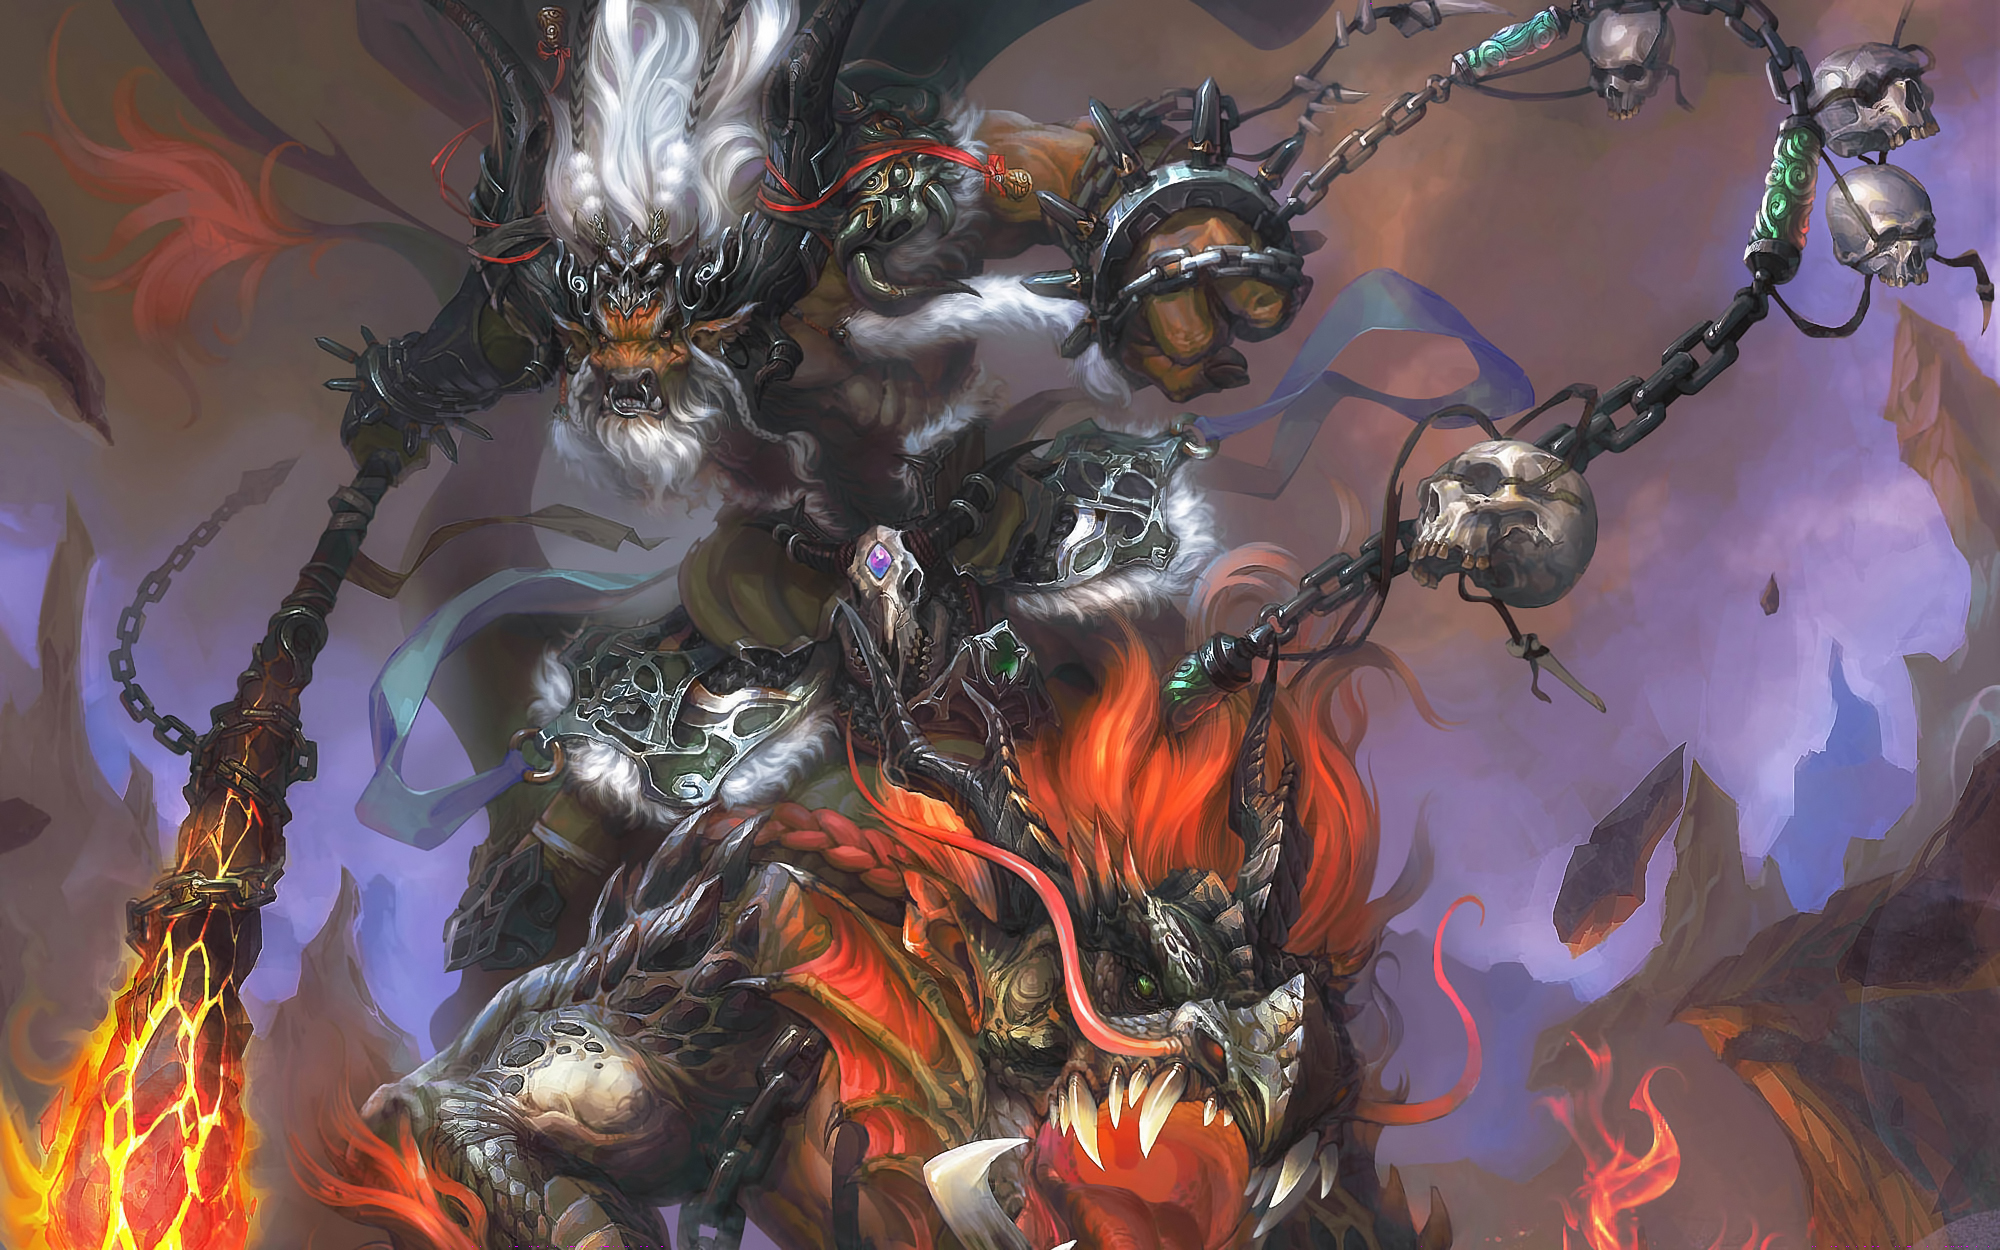 Downaload Overlord King And Warriors Art Wallpaper: Bull King Full HD Wallpaper And Background